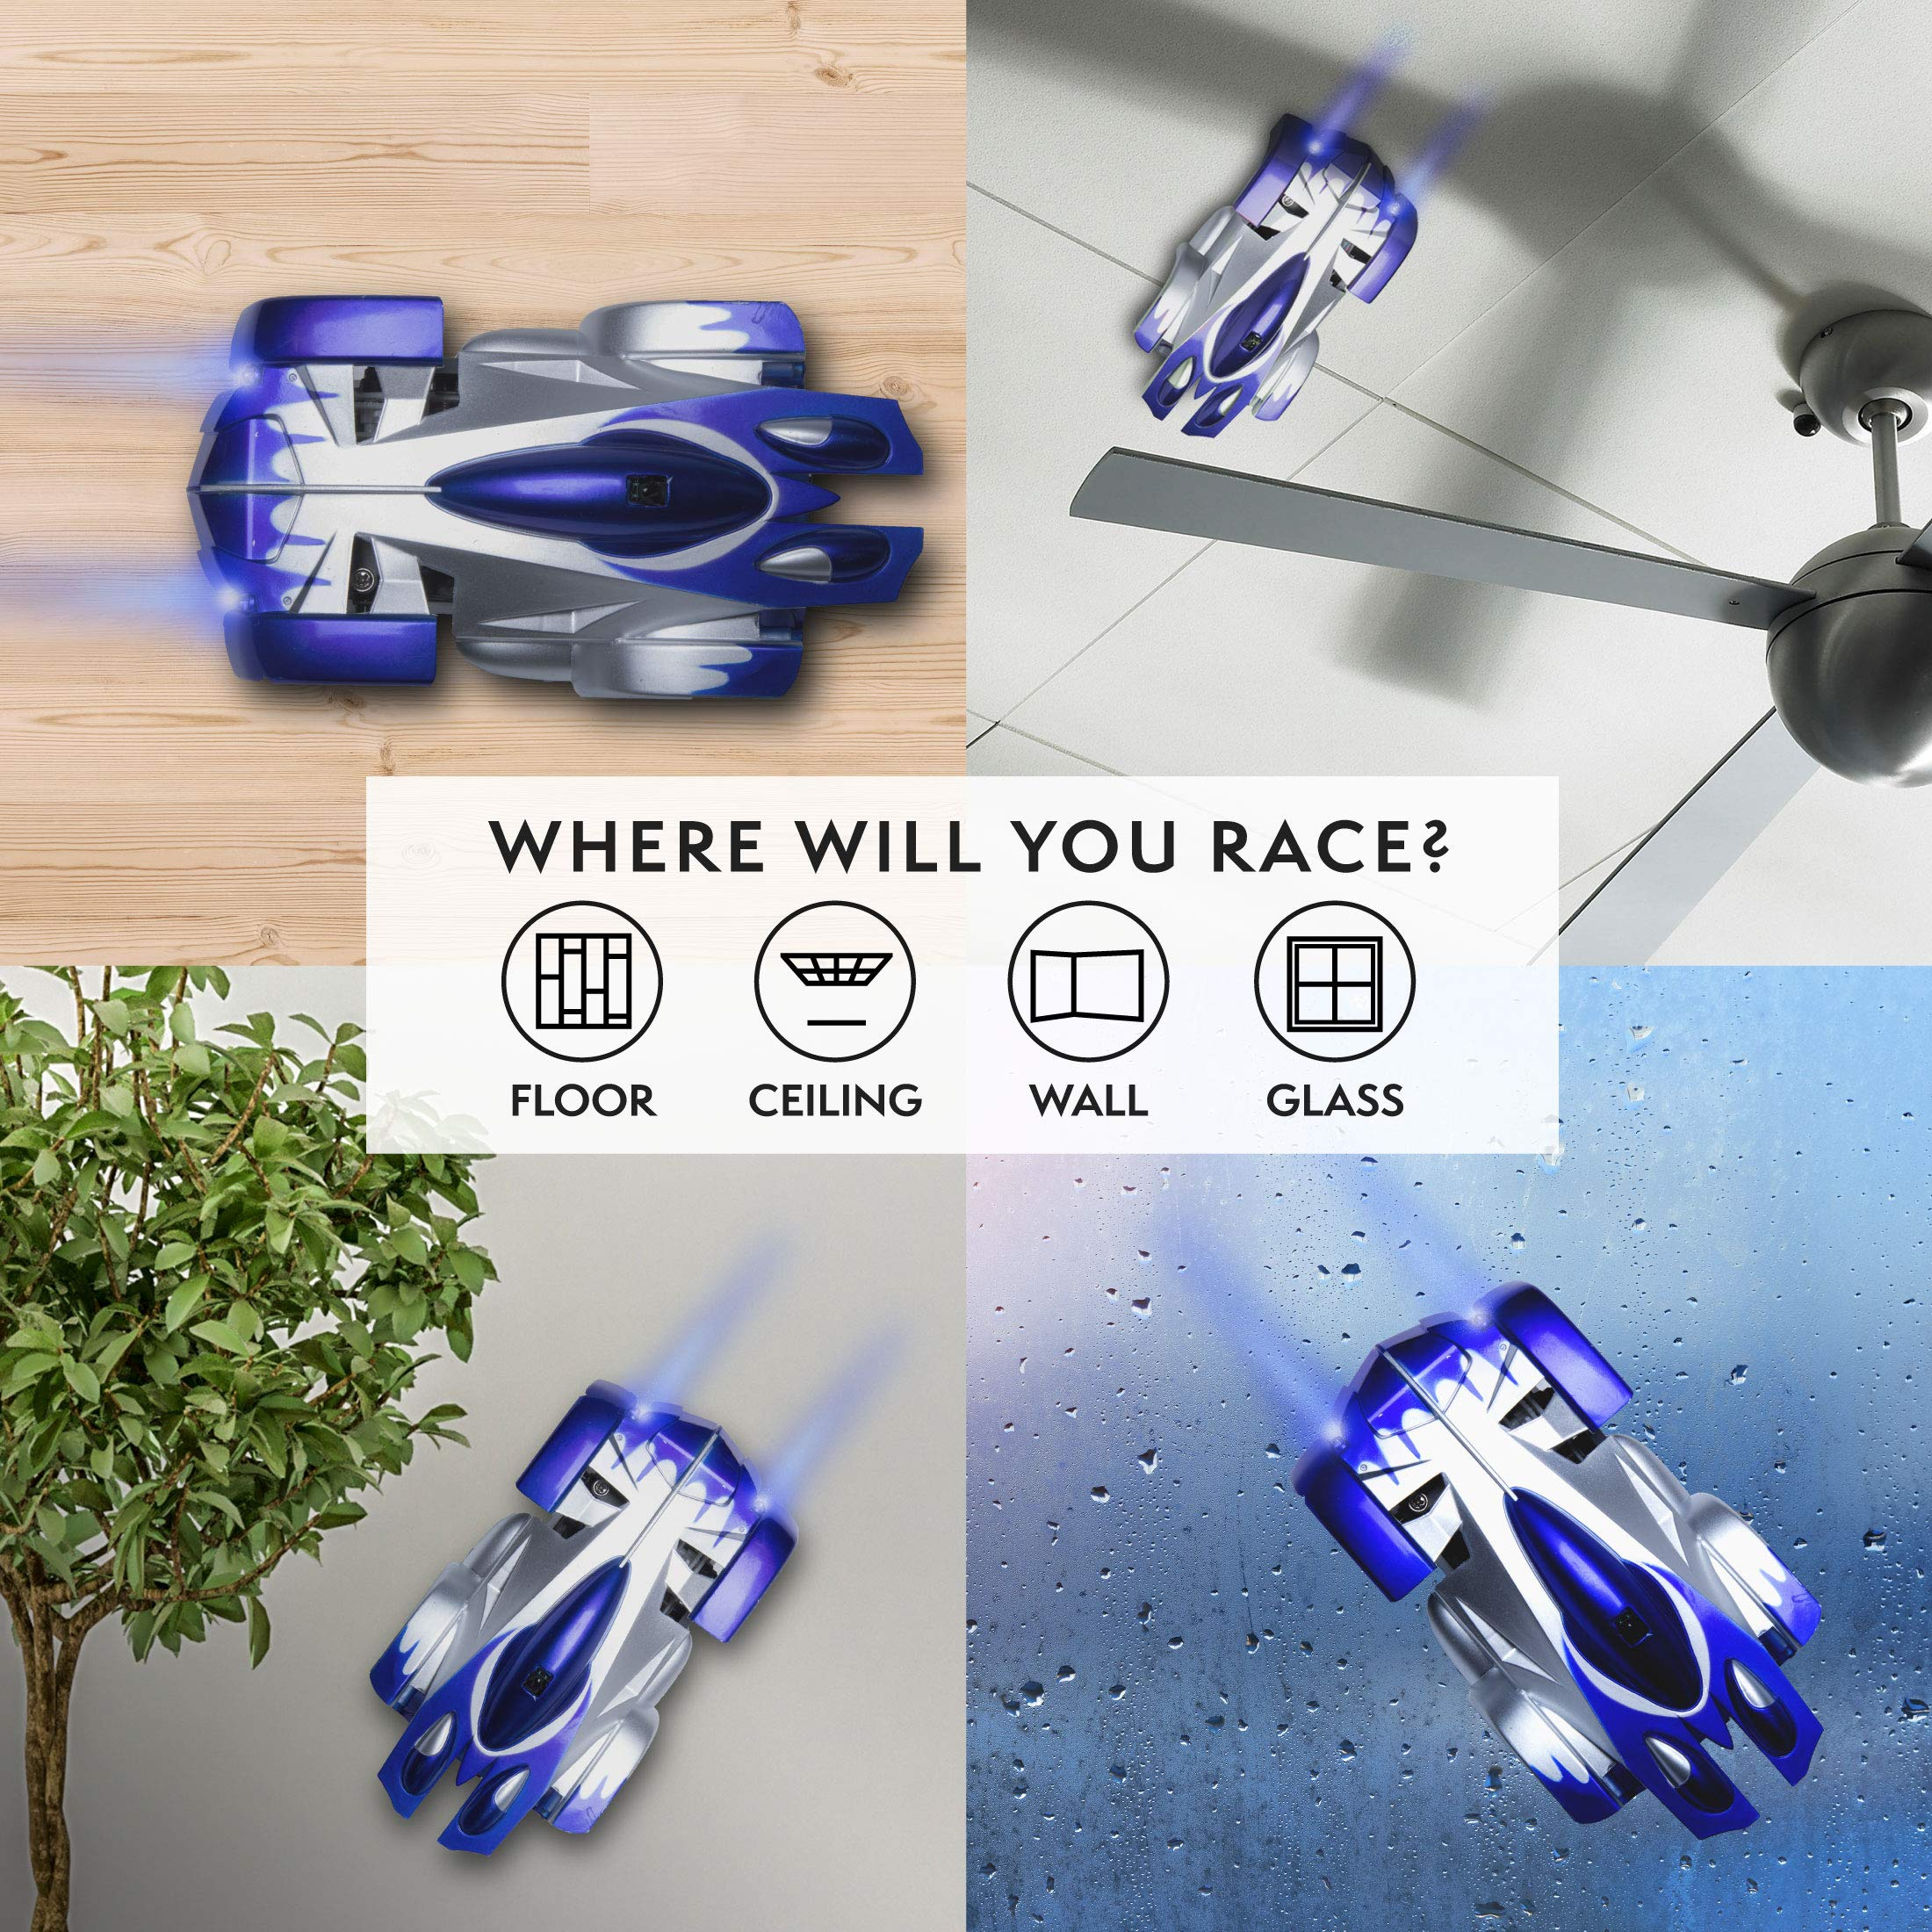 Force1 Gravity Defying RC Car - Remote Control Car for Floor or Wall Rechargeable Fast RC Car (Blue) by Force1 (Image #2)